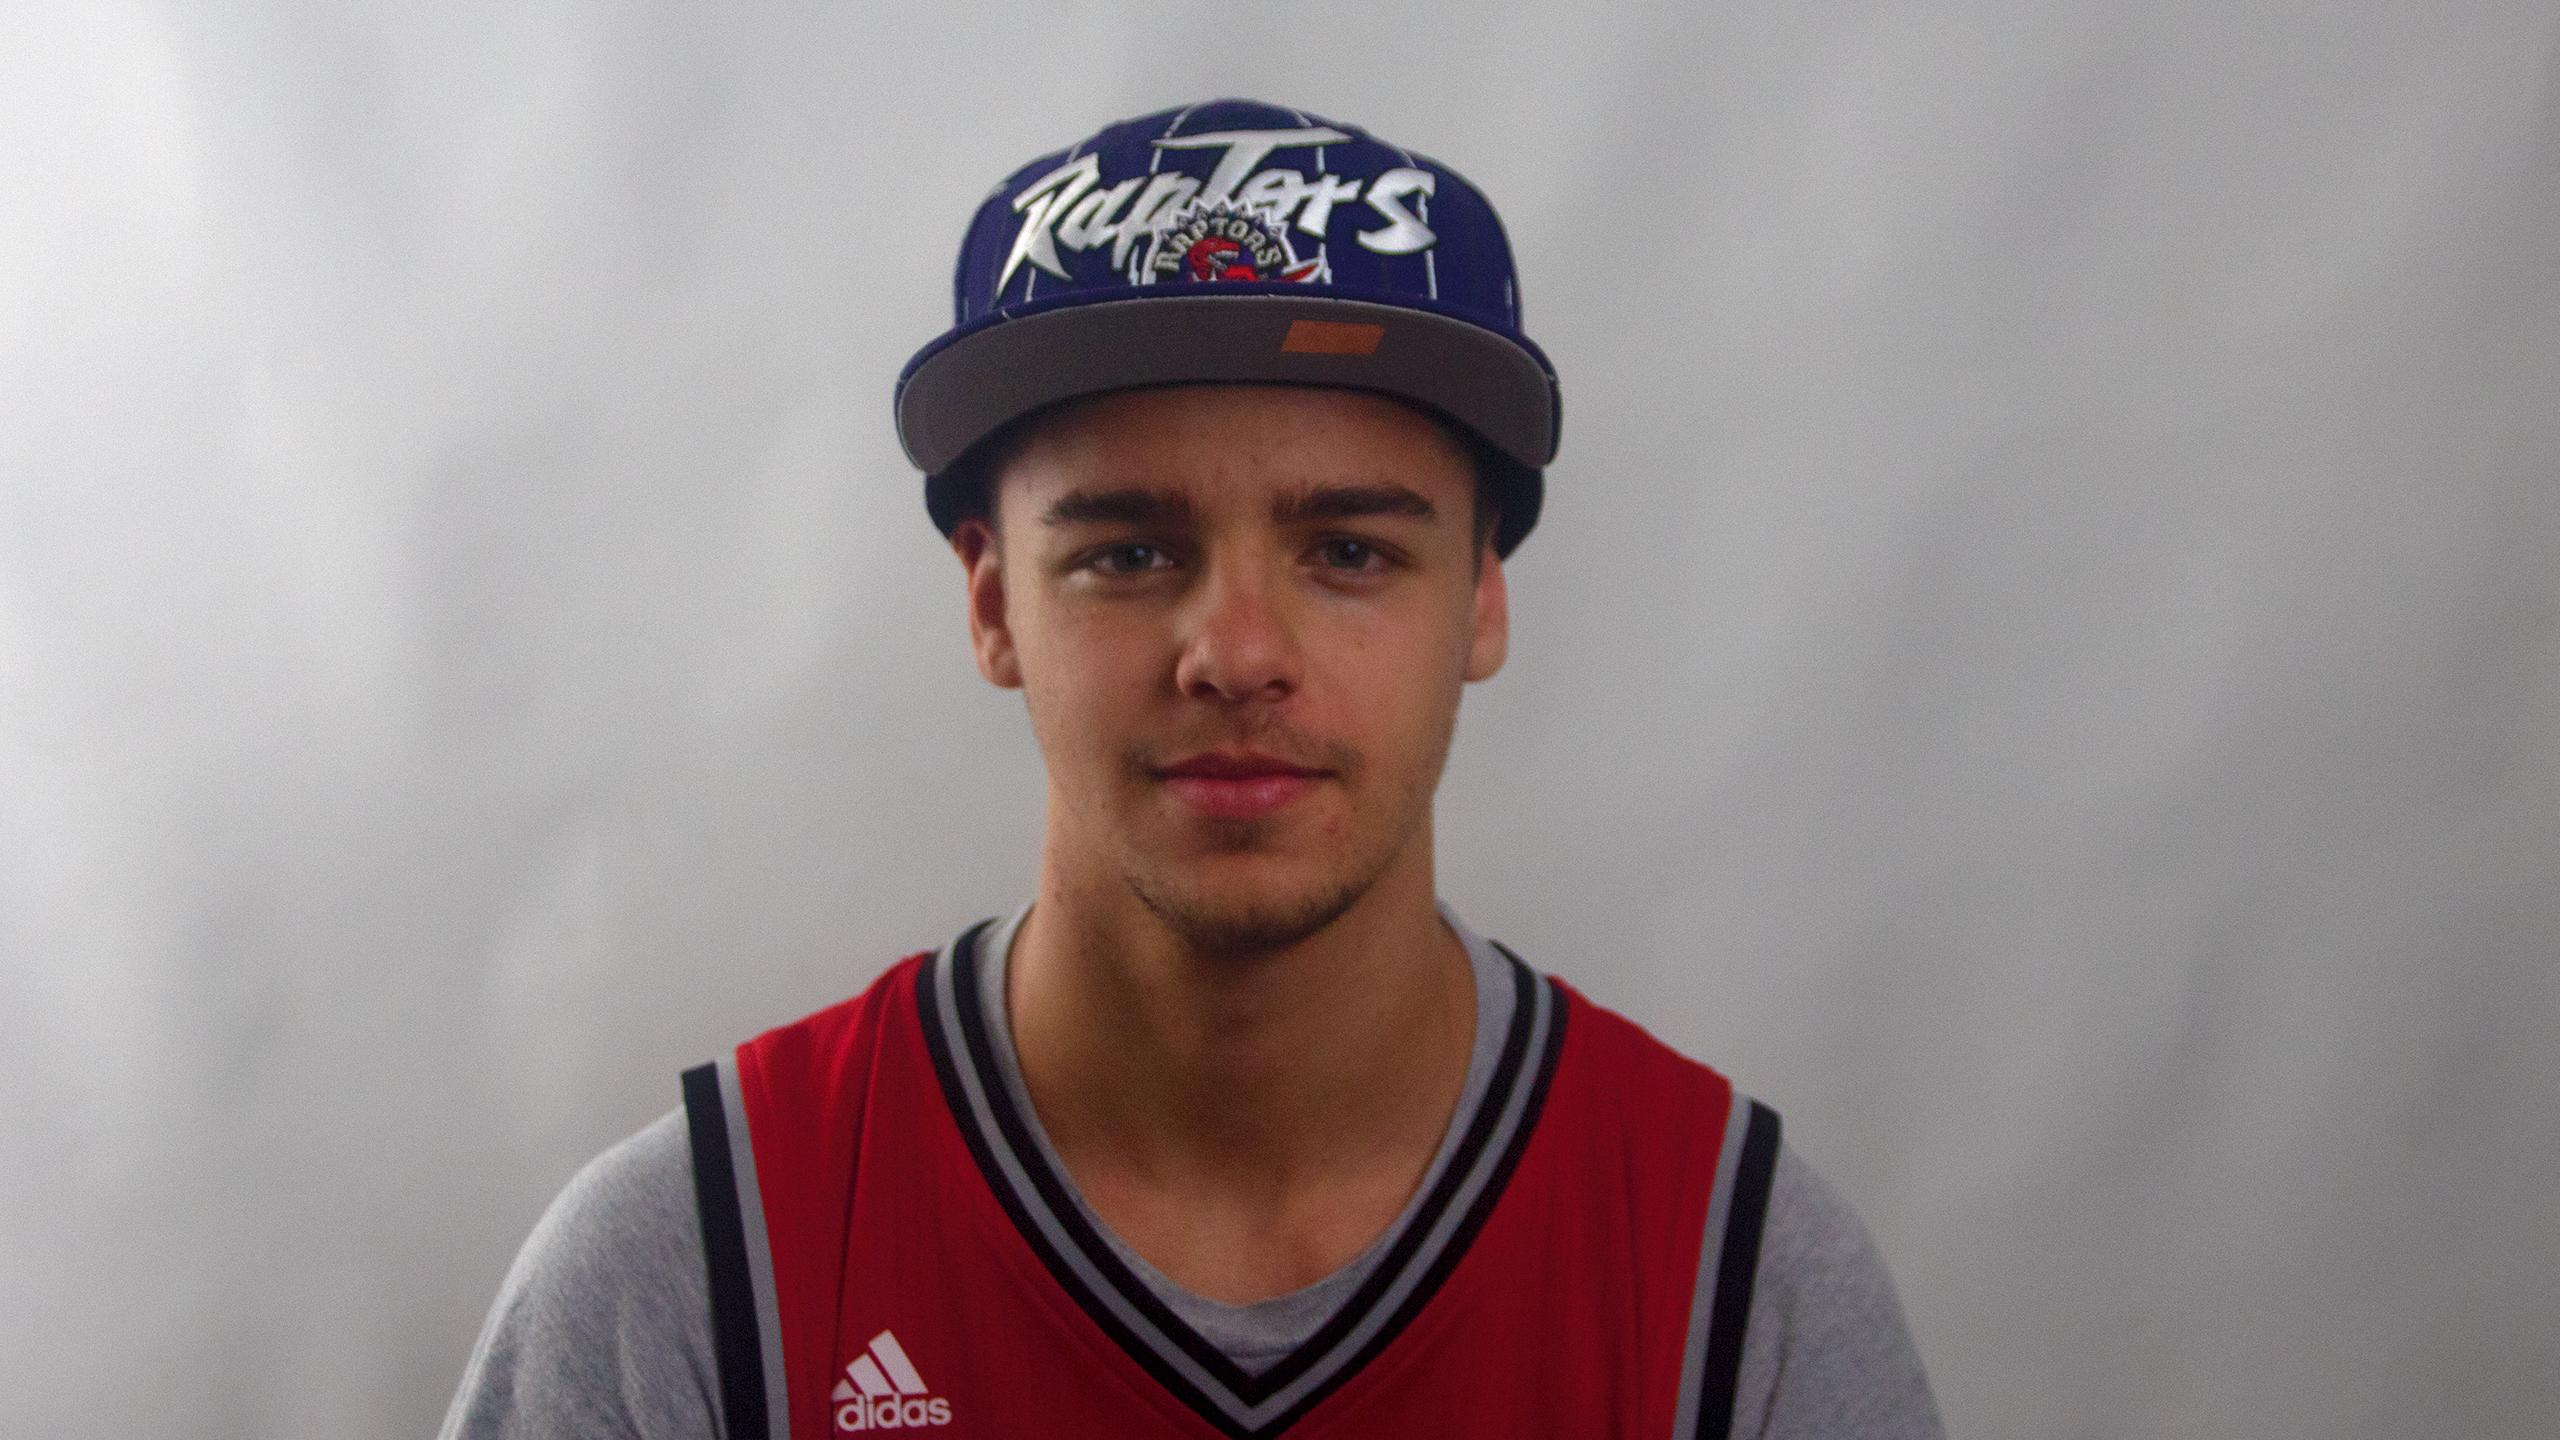 First year university athlete wearing a raptors cap and jersey